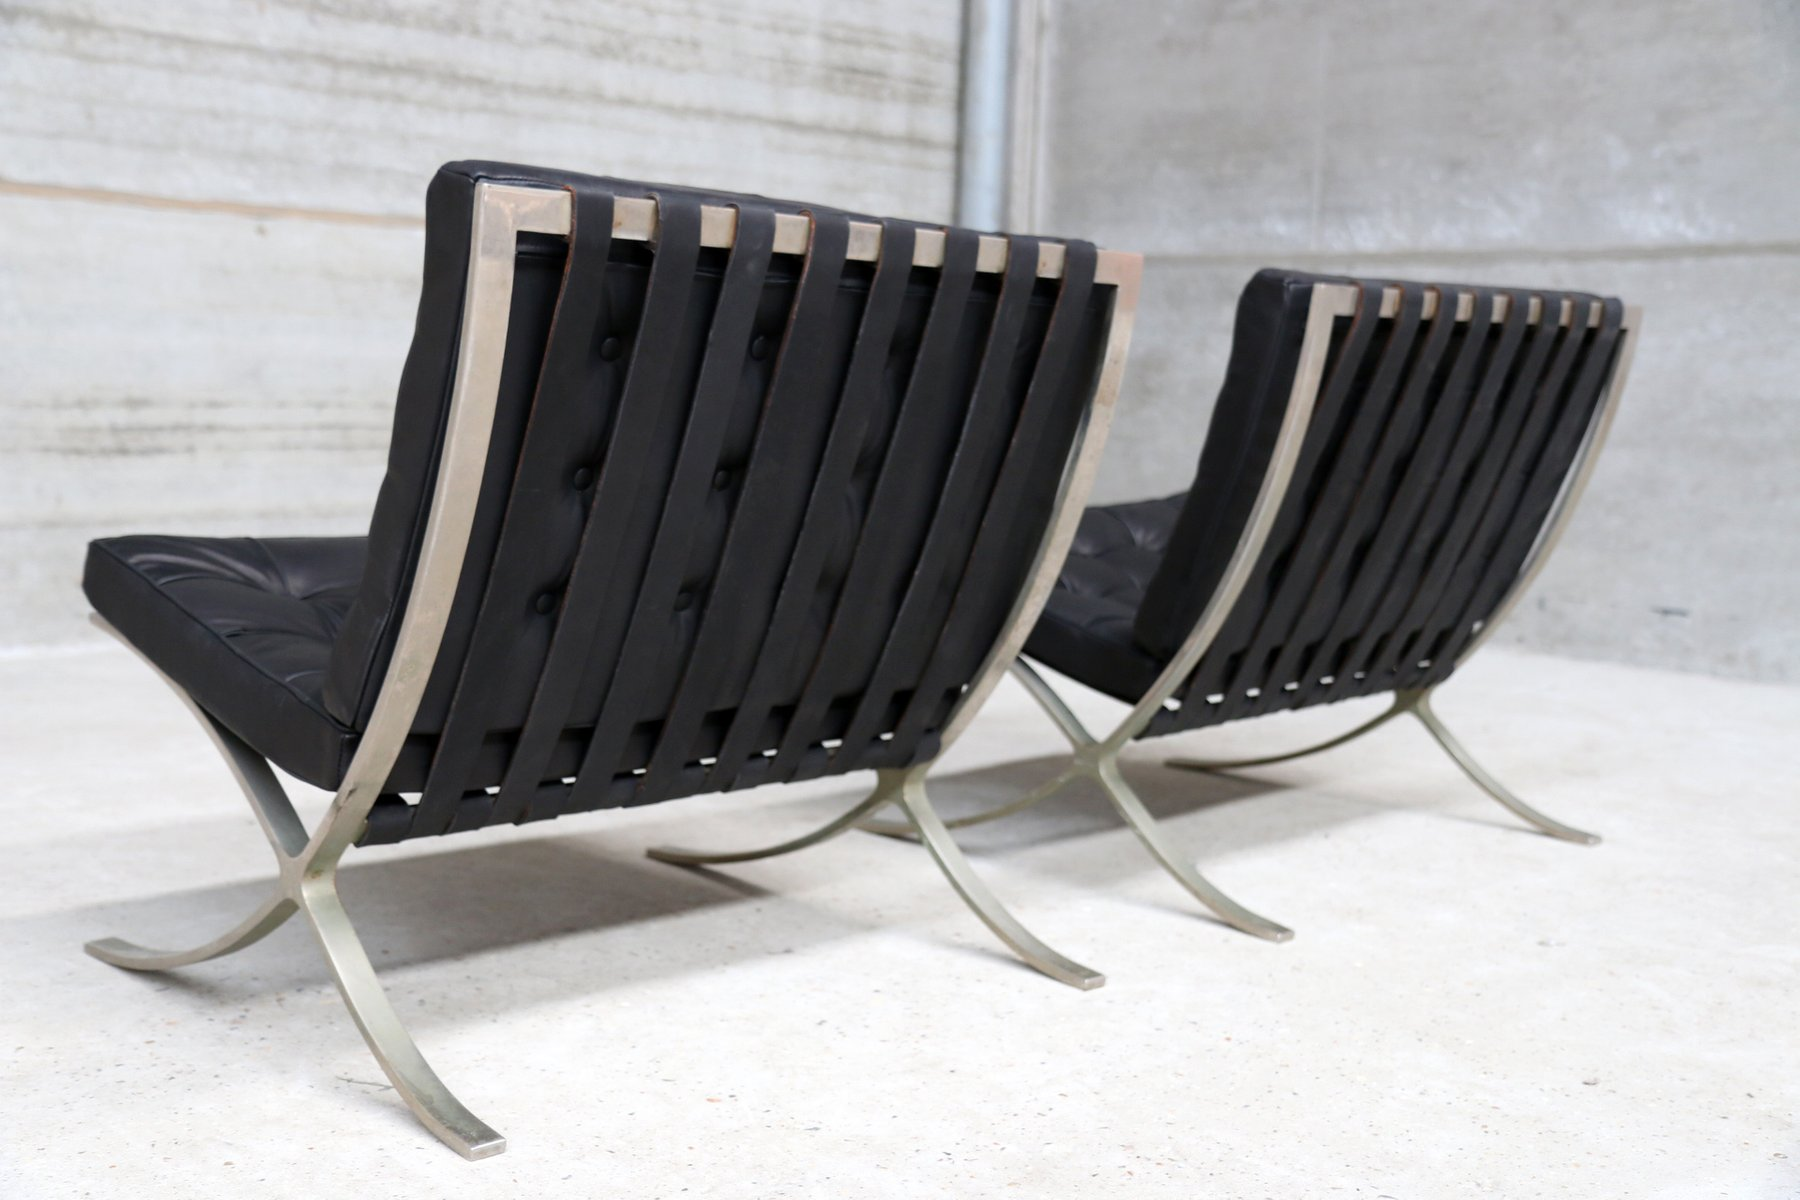 Mies van der rohe chair - Vintage Barcelona Chairs By Ludwig Mies Van Der Rohe For Knoll Set Of 2 For Sale At Pamono